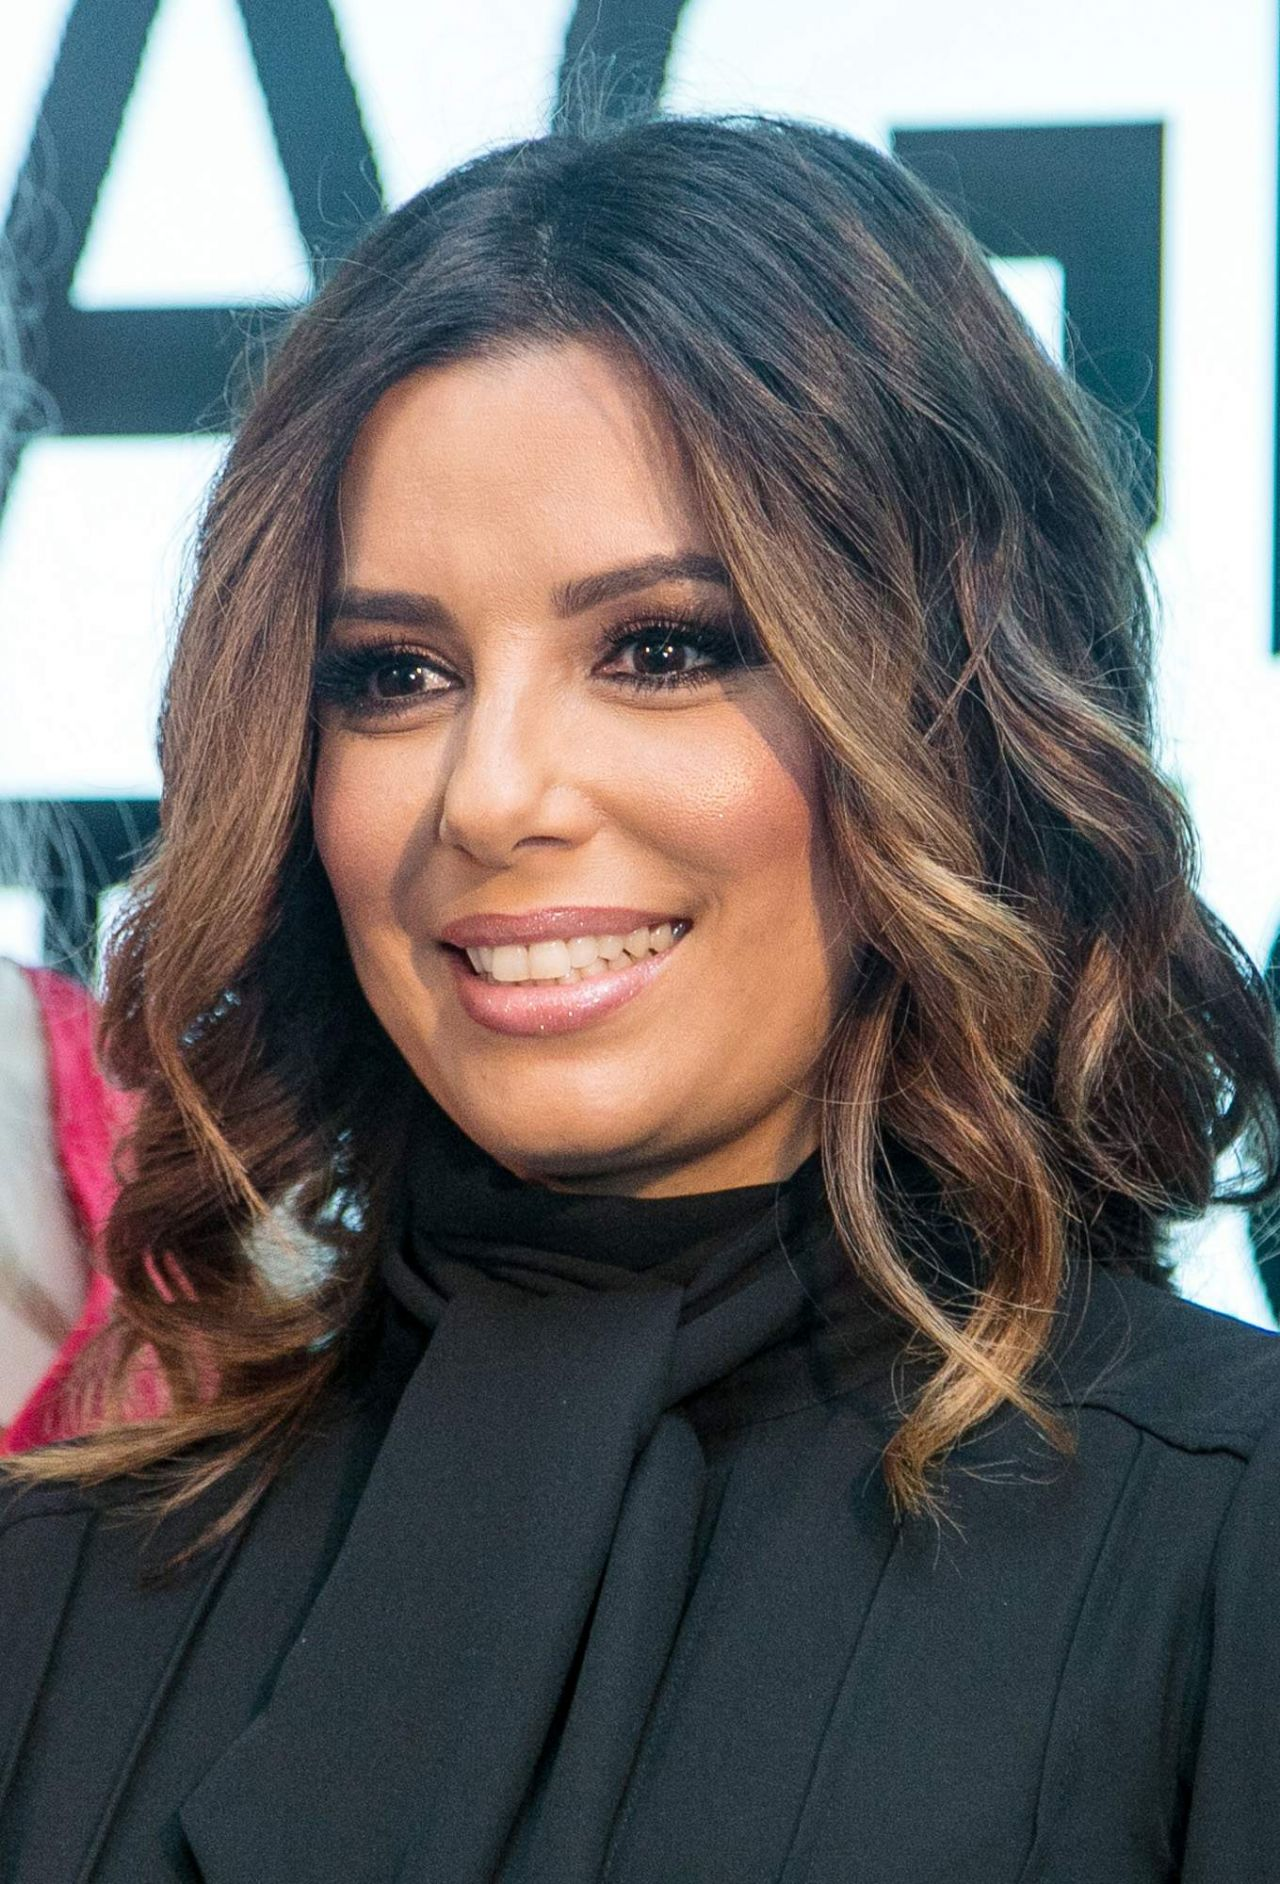 Eva Longoria - L'Oreal Press day in Moscow 9/22/2016 Eva Longoria